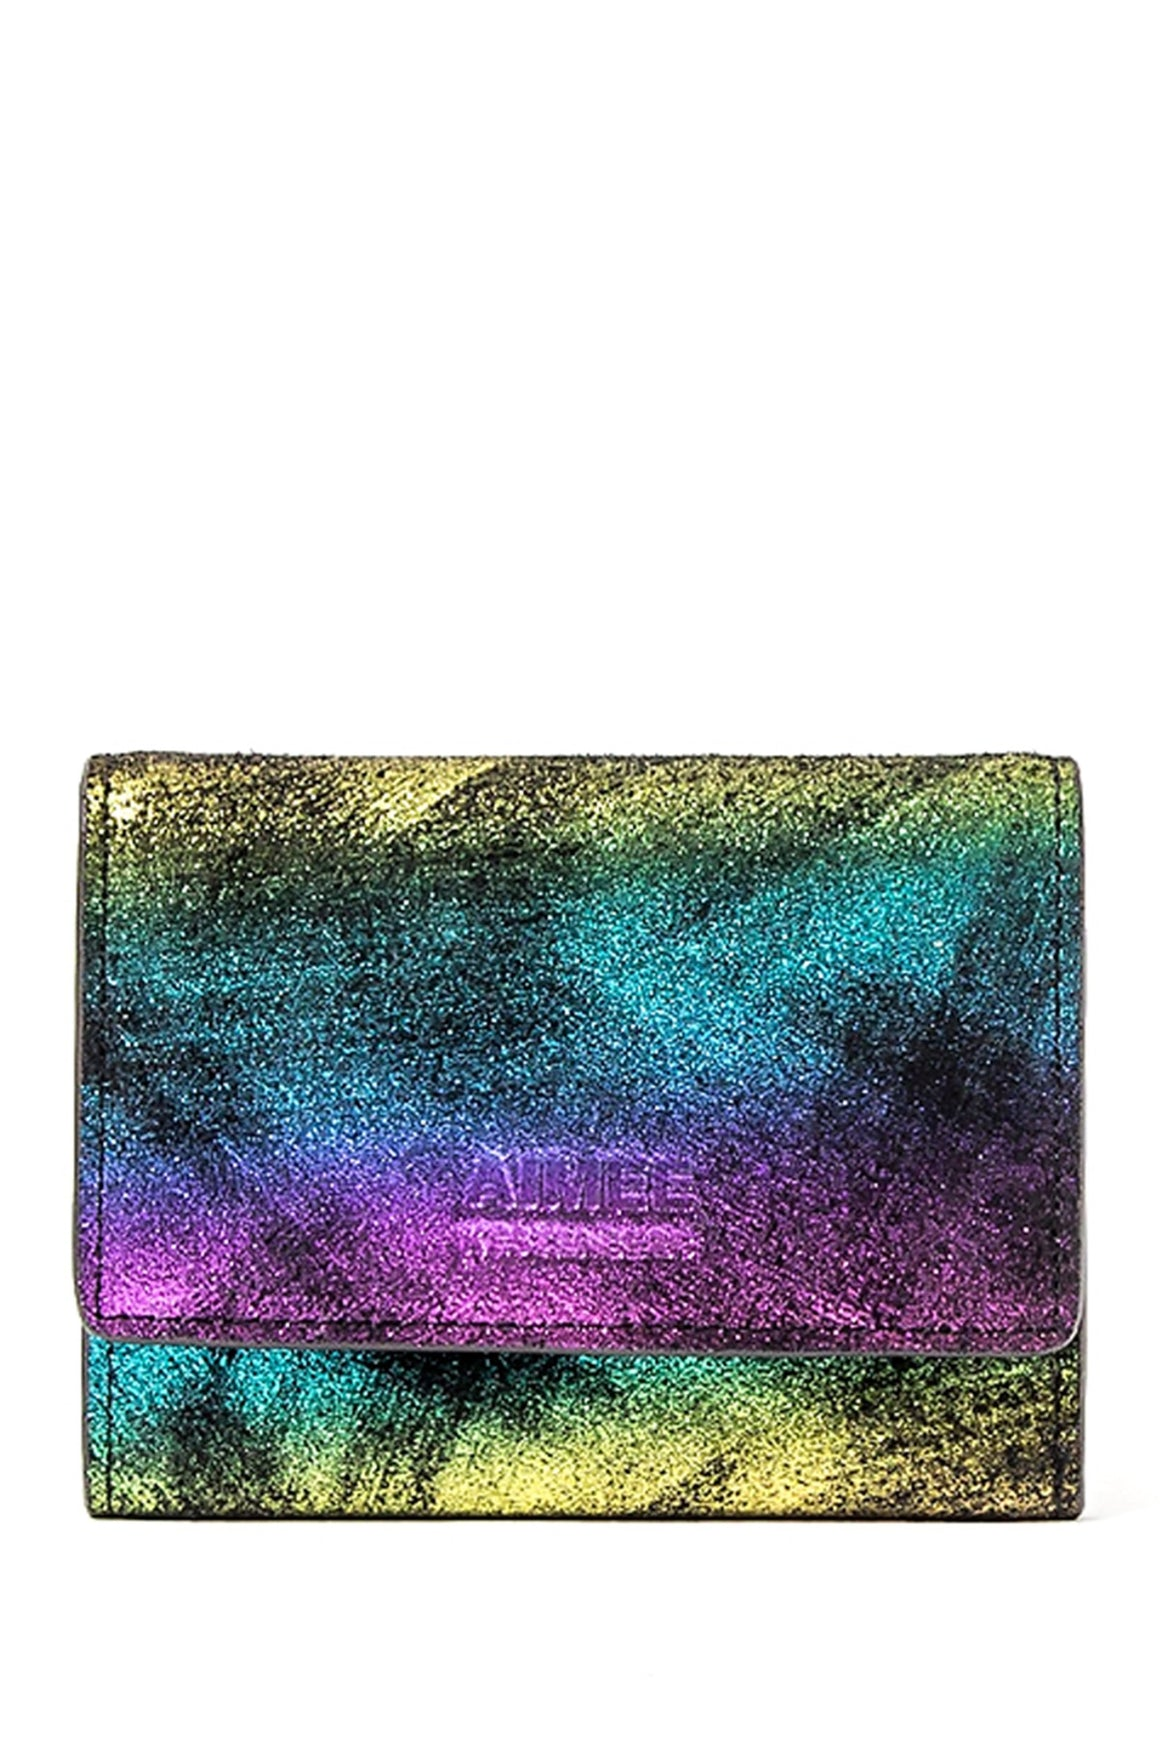 Aimee Kestenberg Madrid French Wallet Rainbow Shimmer